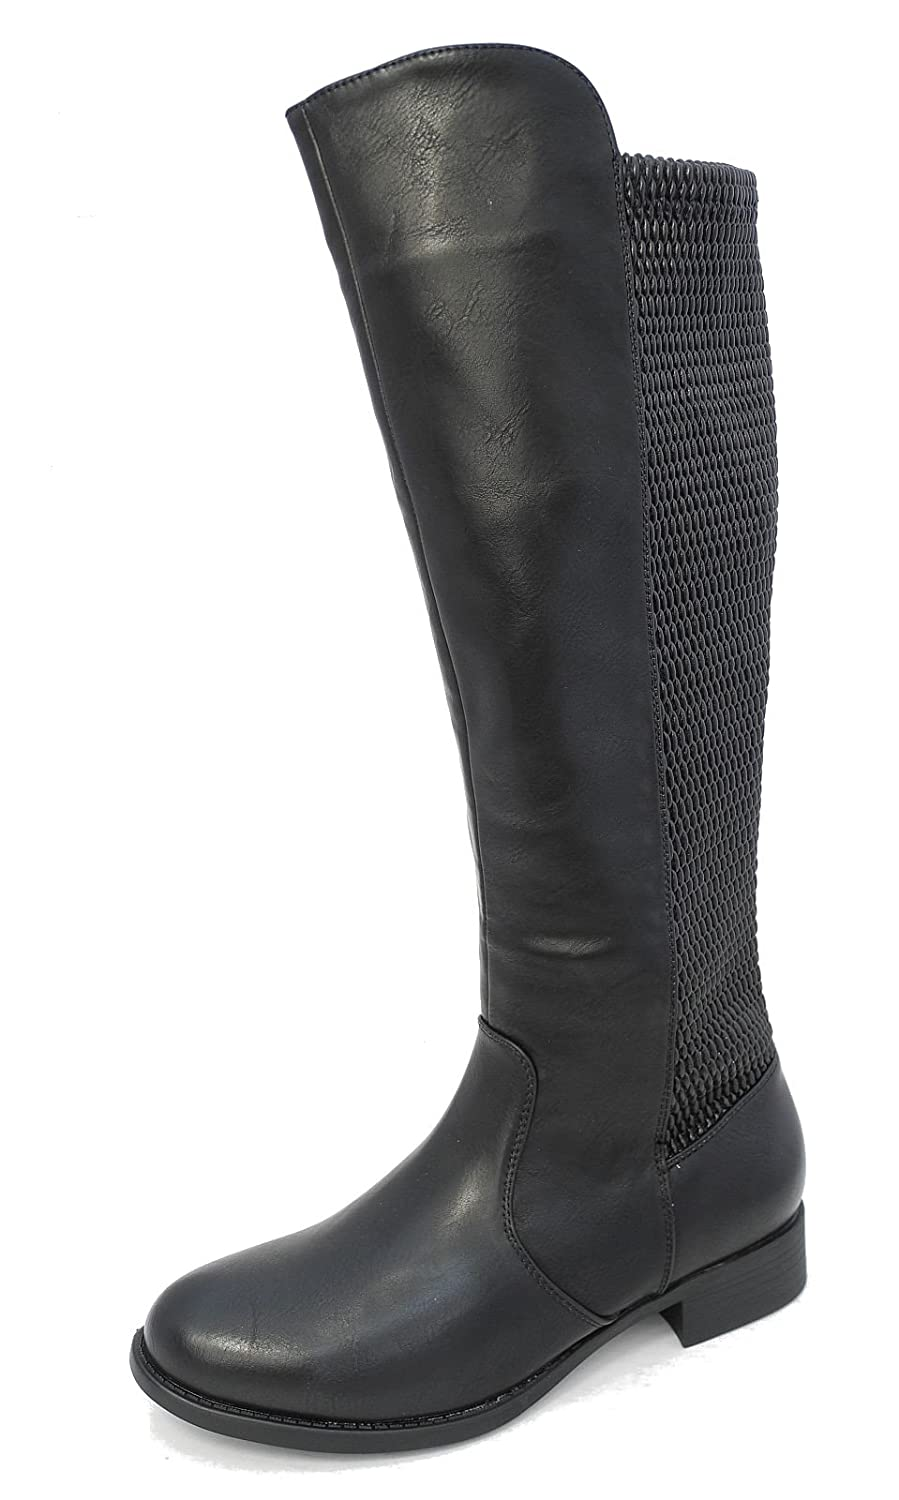 7d11813cd76 Cipriata Womens Ladies Leather Look Wide Stretch Elasticated Long Leg Boots  Size 3-8